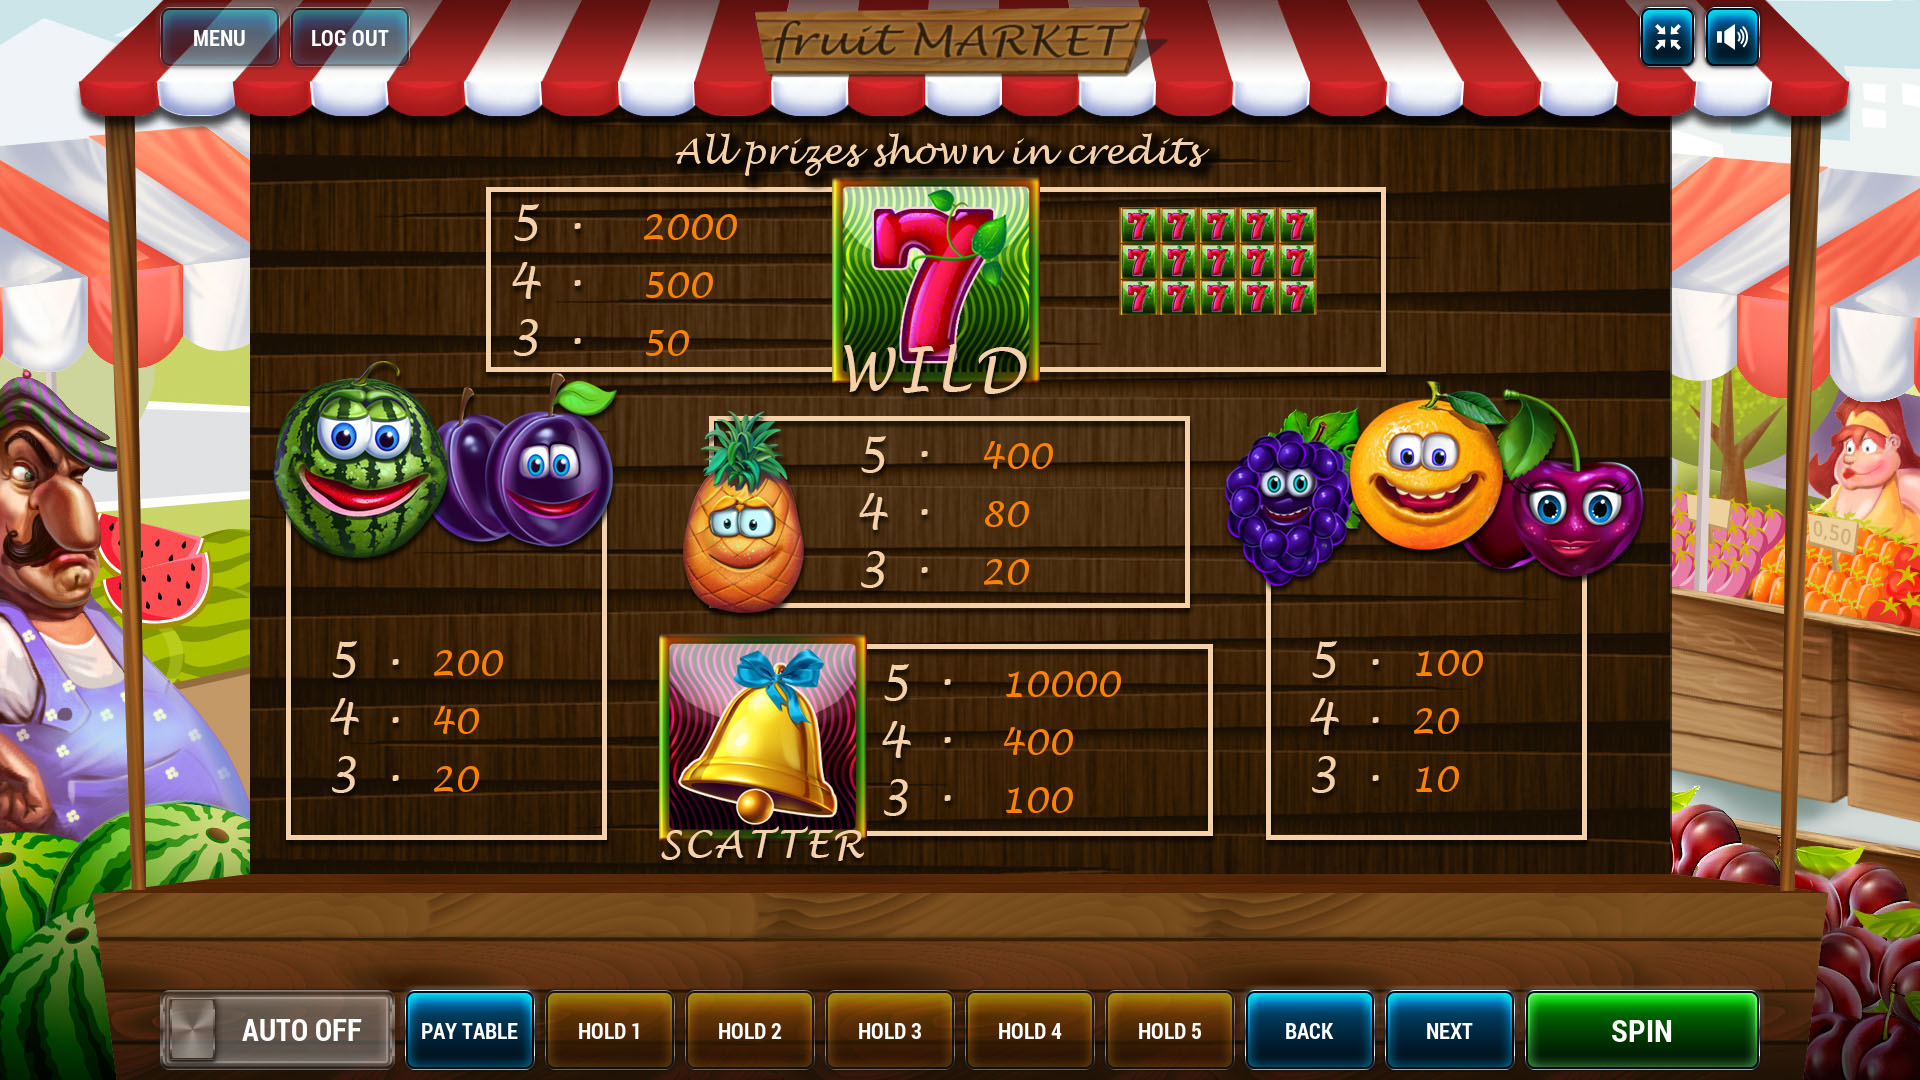 Fruit Market screenshot 3